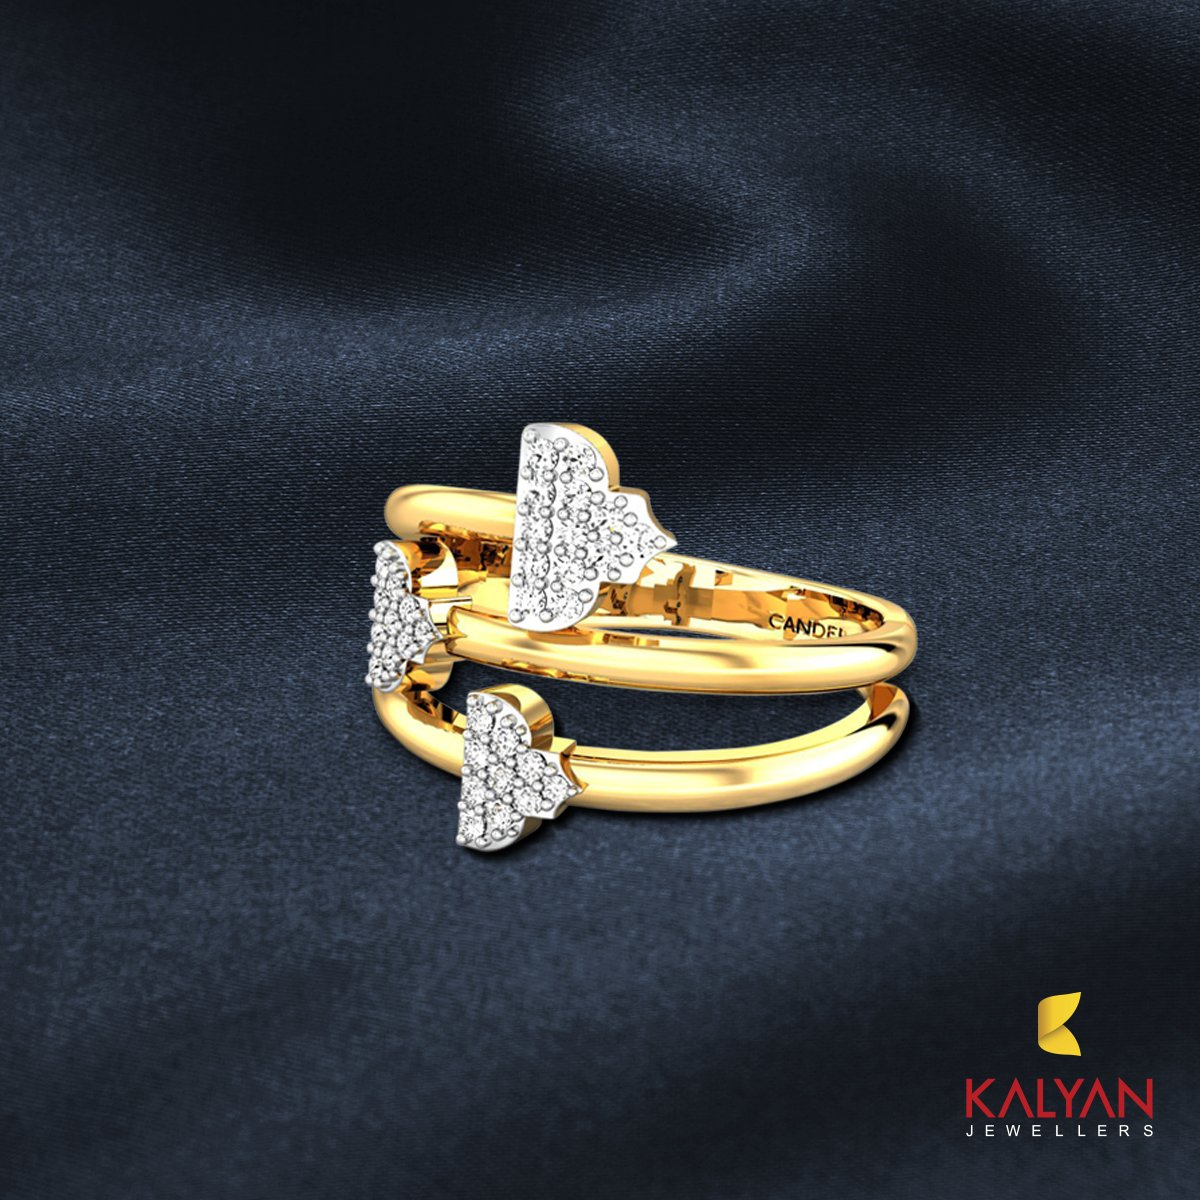 What | Kalyan Jewellers in Karve Road, Pune